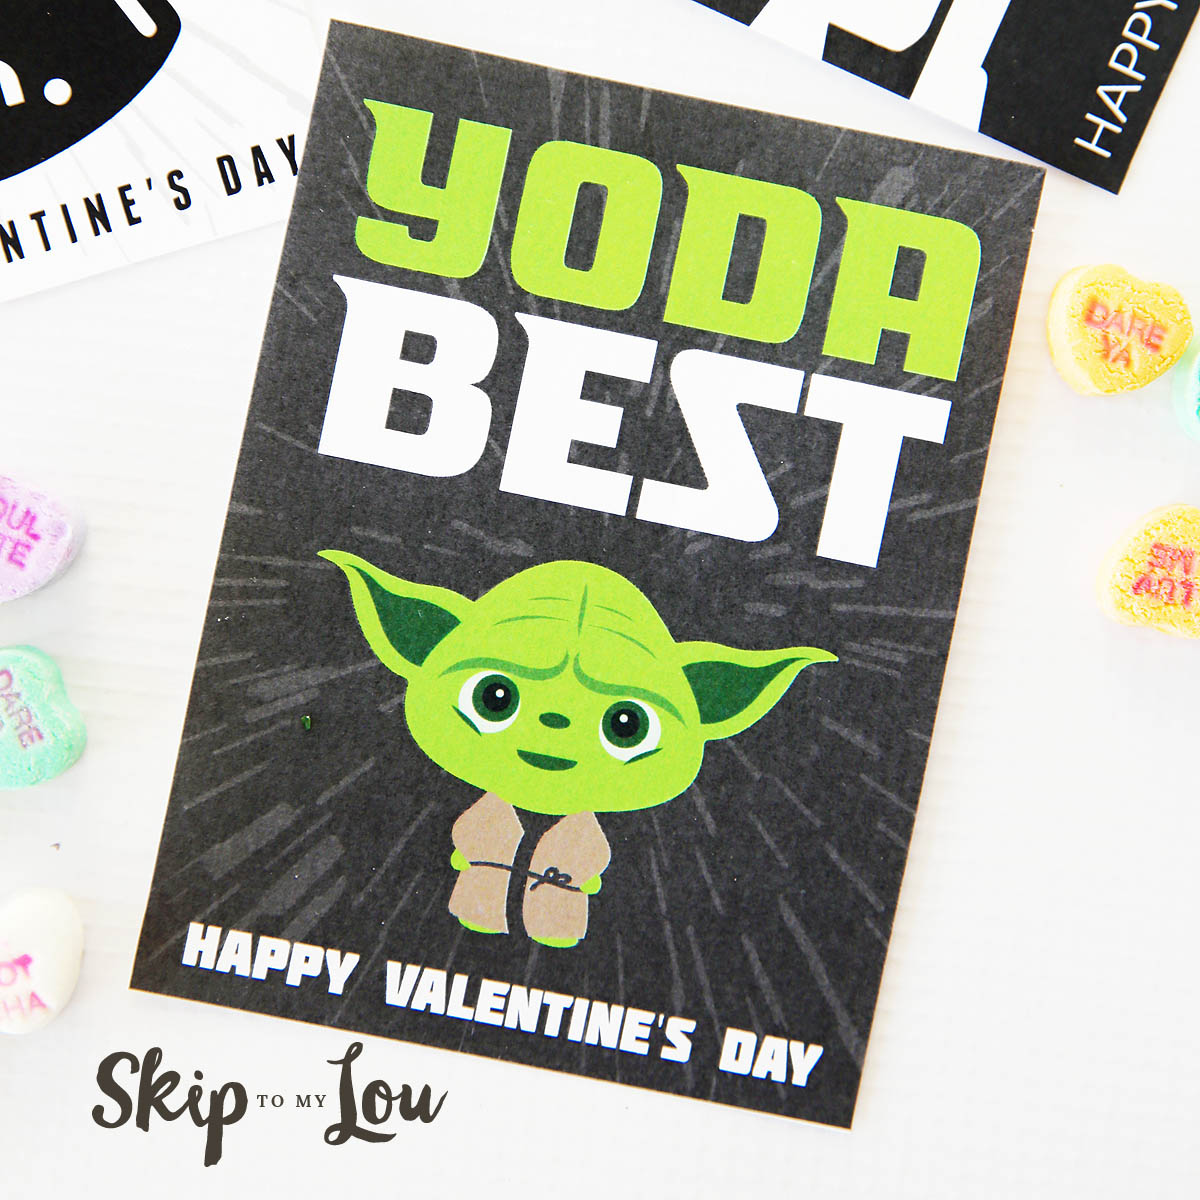 Witty image with regard to printable star wars valentine